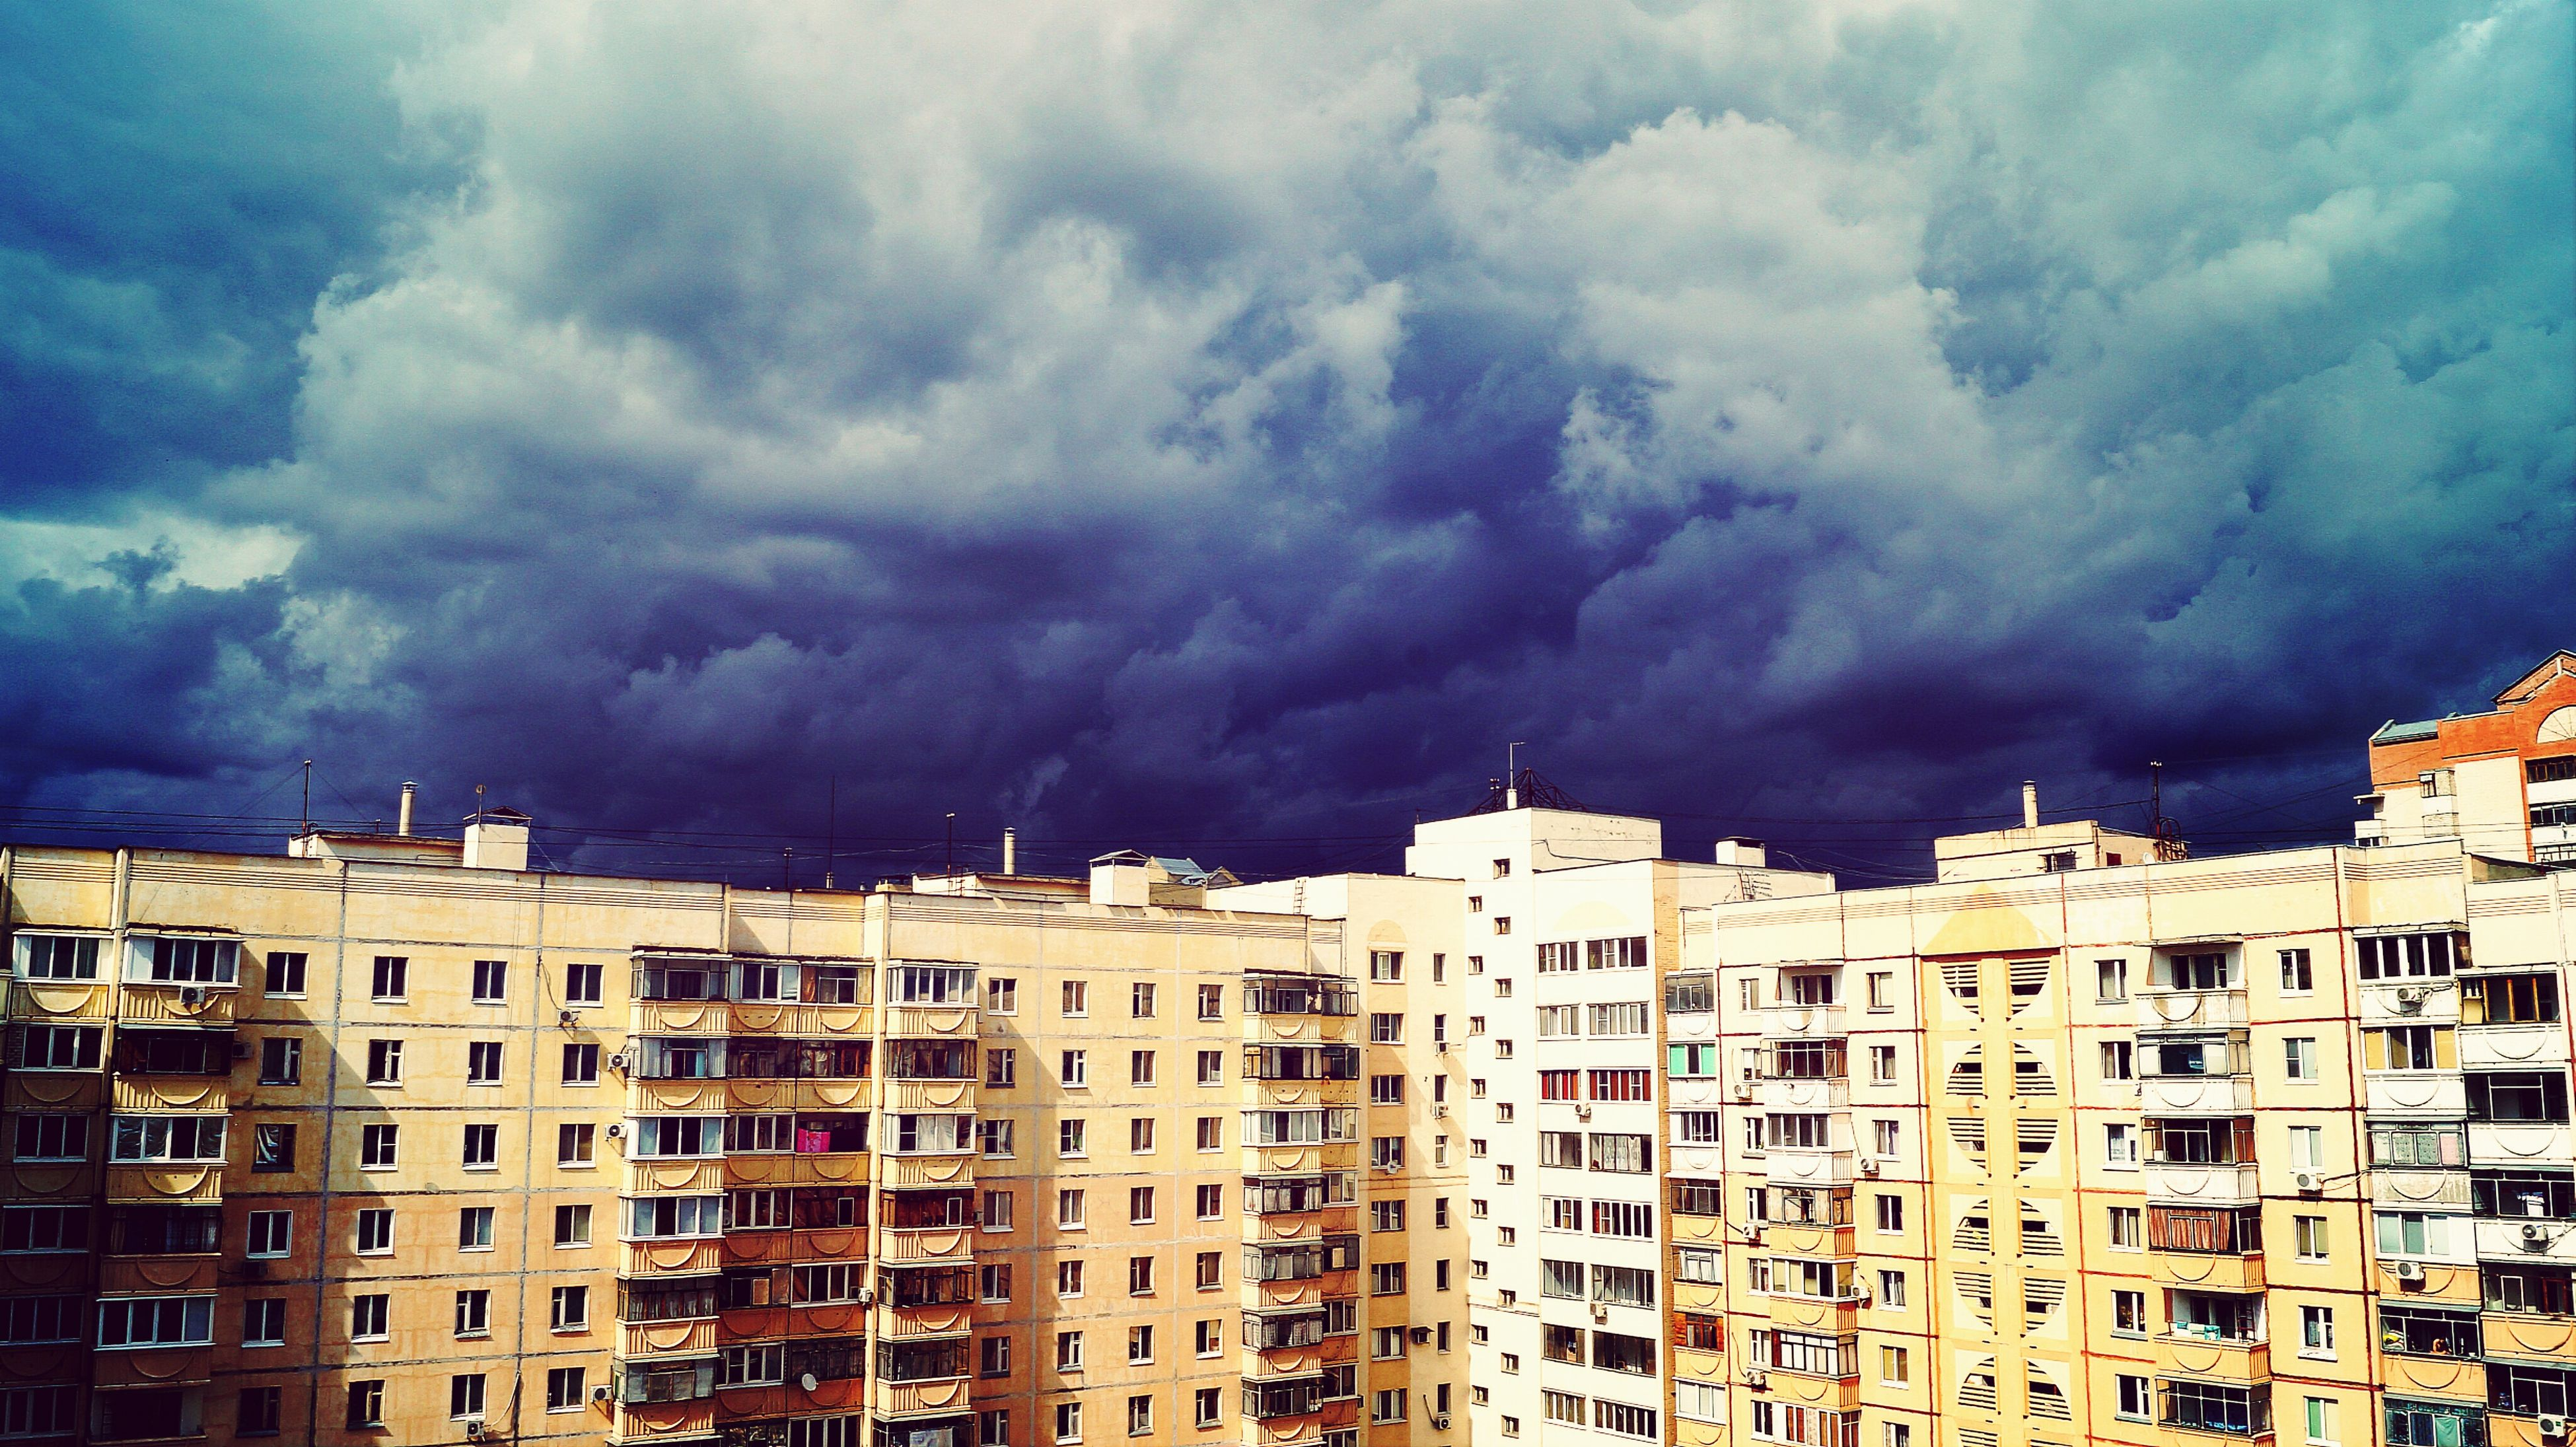 architecture, building exterior, built structure, sky, cloud - sky, cloudy, city, residential structure, residential building, weather, residential district, overcast, cloud, storm cloud, building, low angle view, cityscape, house, outdoors, no people